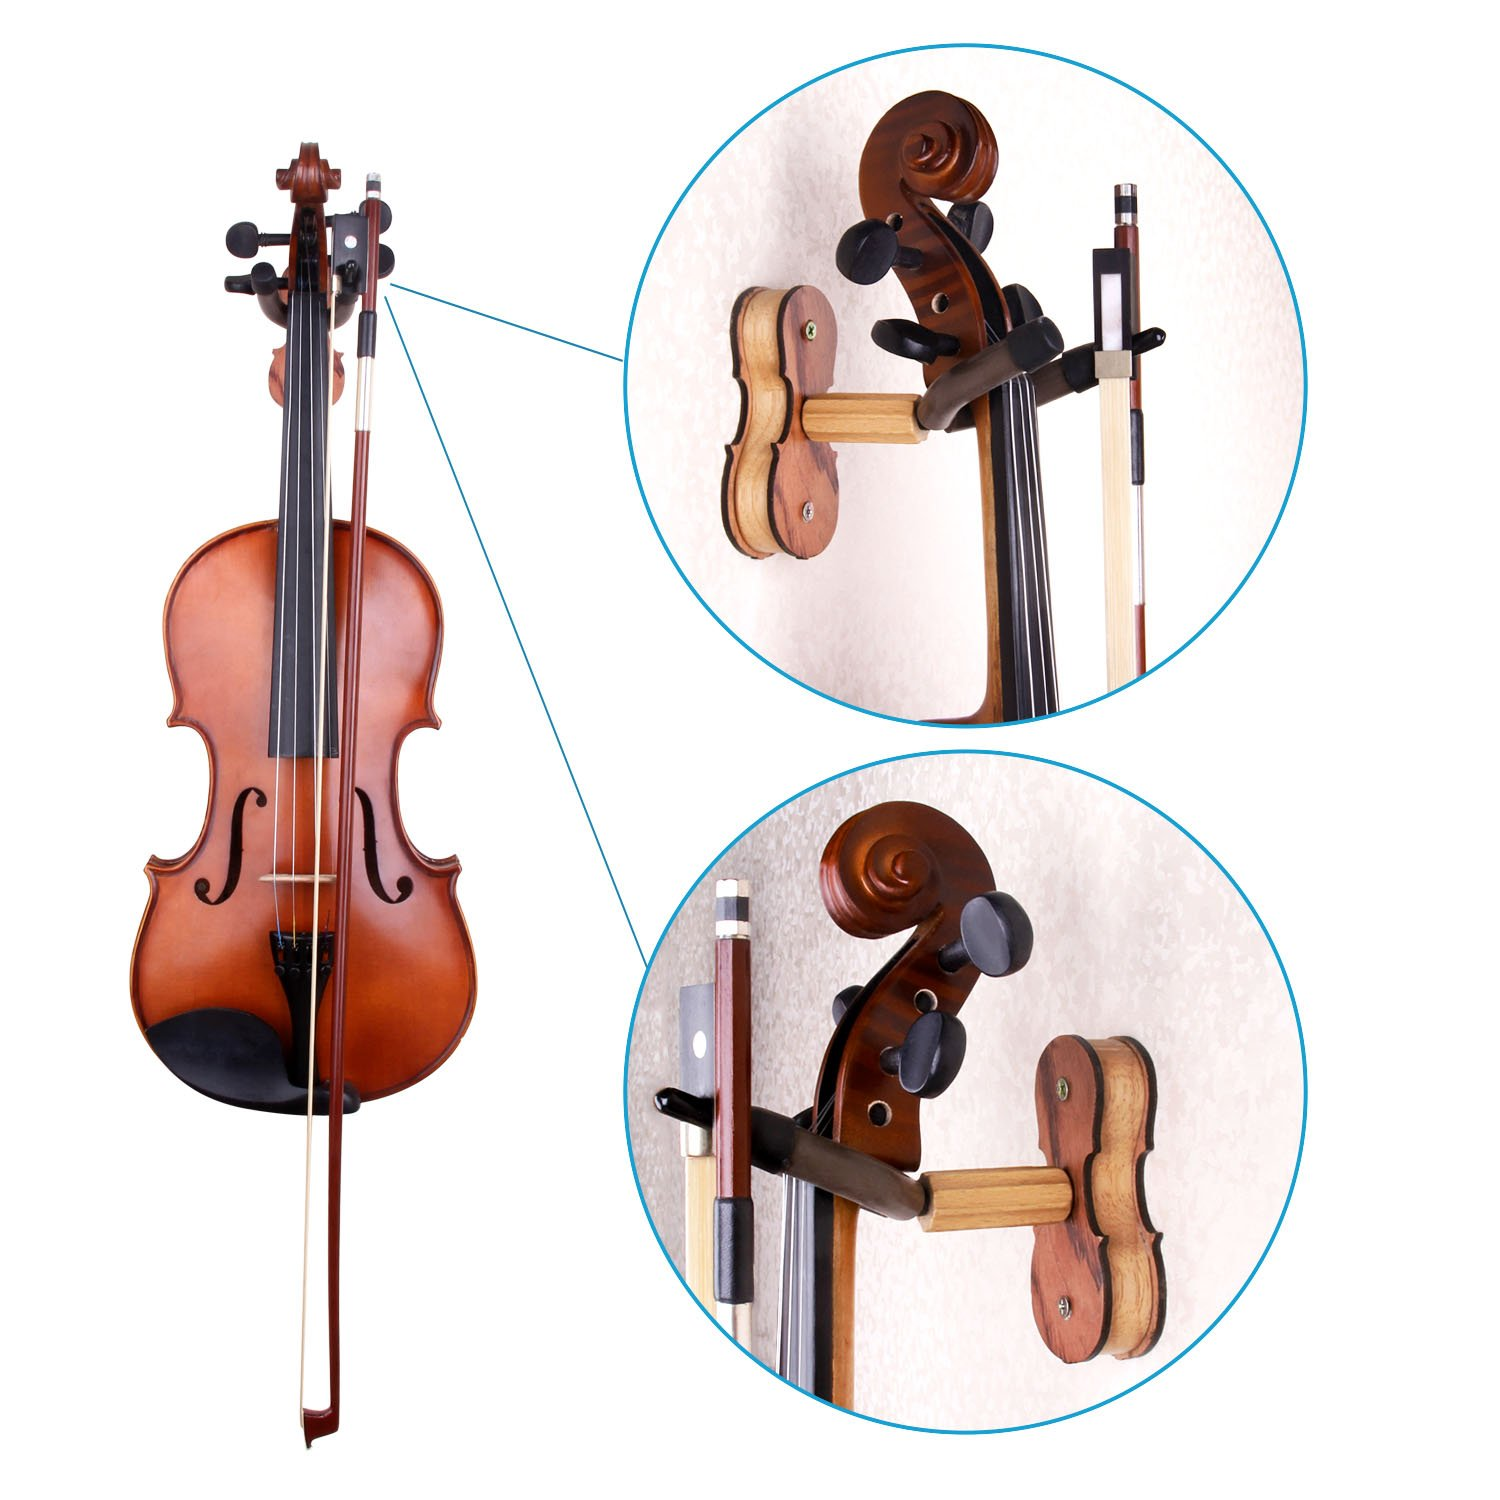 Mugig Violin Shoulder Rest Rosin Tuner Violin Hanger Violin Accessories Kit 10 in 1 Package for Violin Beginners and Practicing